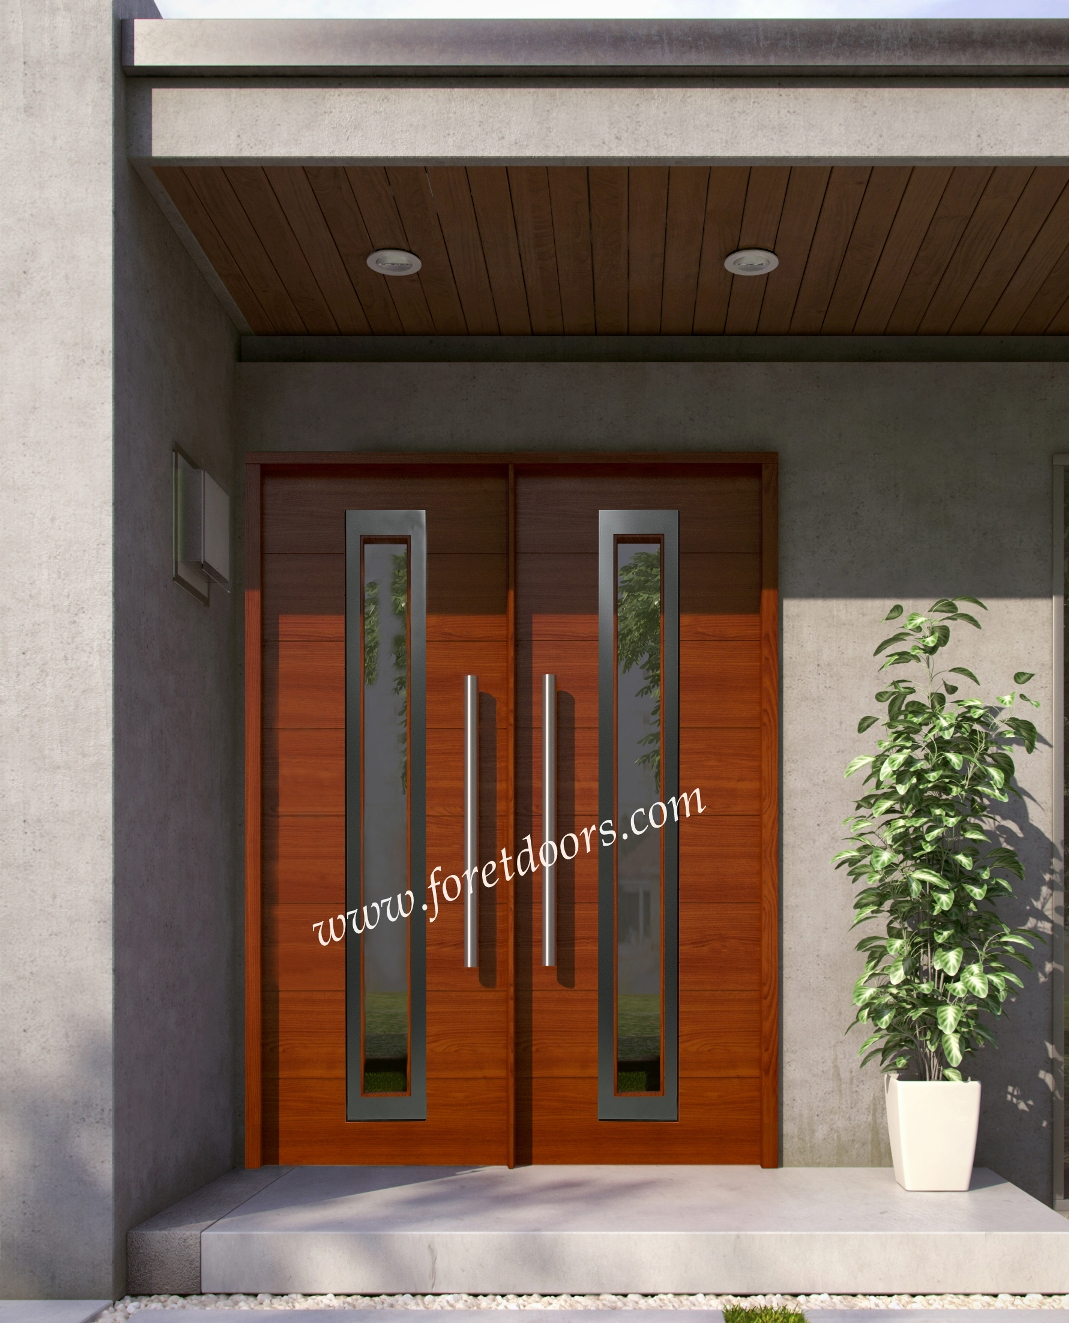 Miraculous Gallery Of Modern Wood Front Entry Doors In Stock At A Door Handles Collection Olytizonderlifede